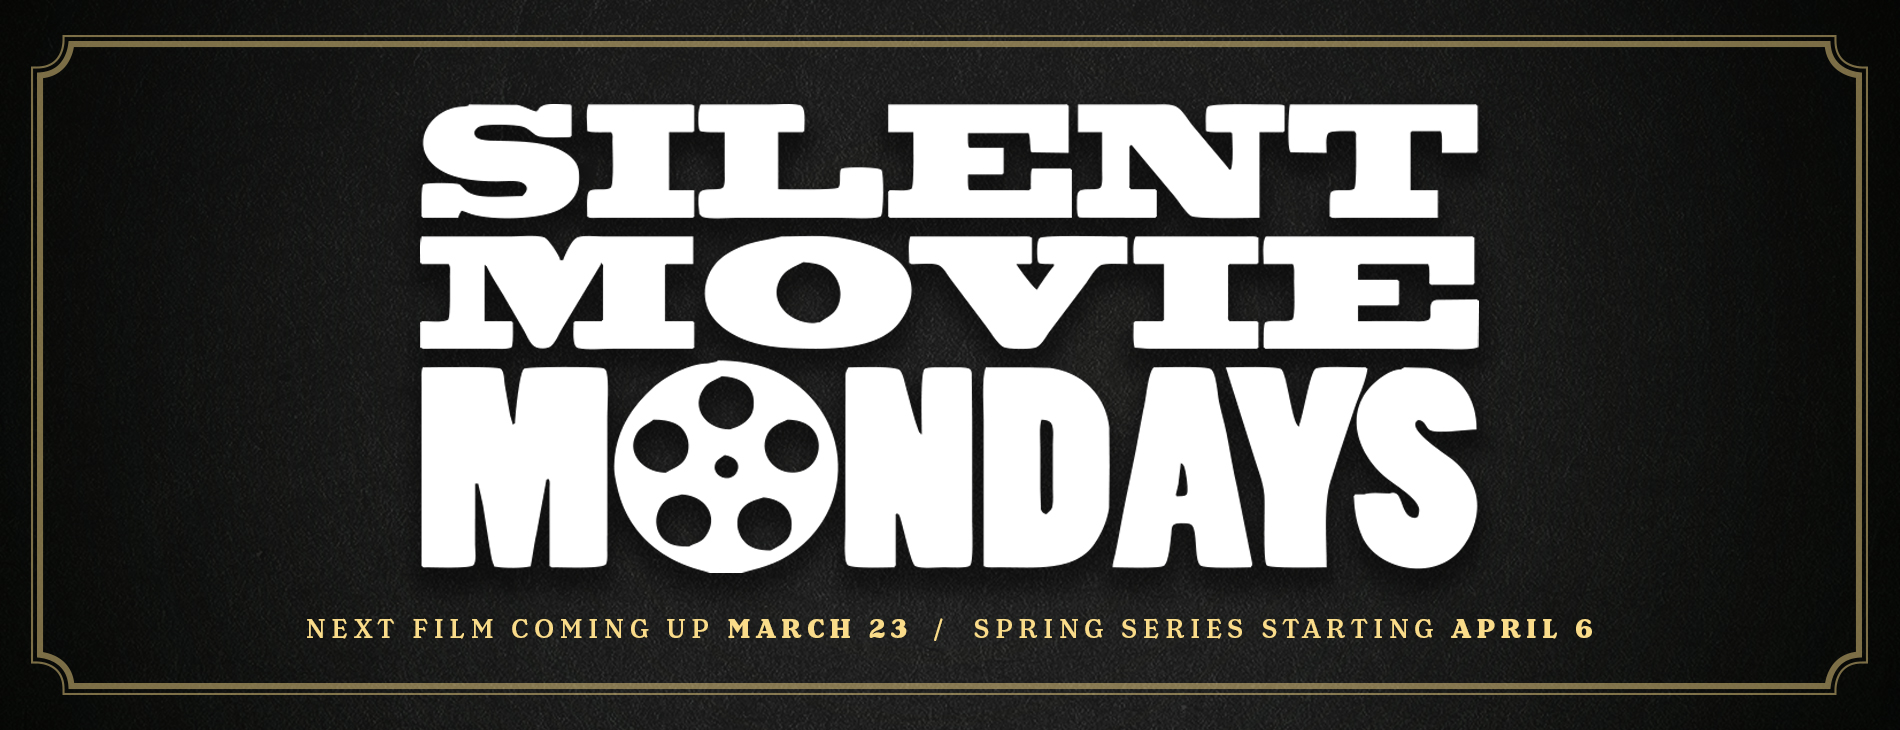 Silent Movie Mondays - Next film coming up March 23 - Spring series starting April 6